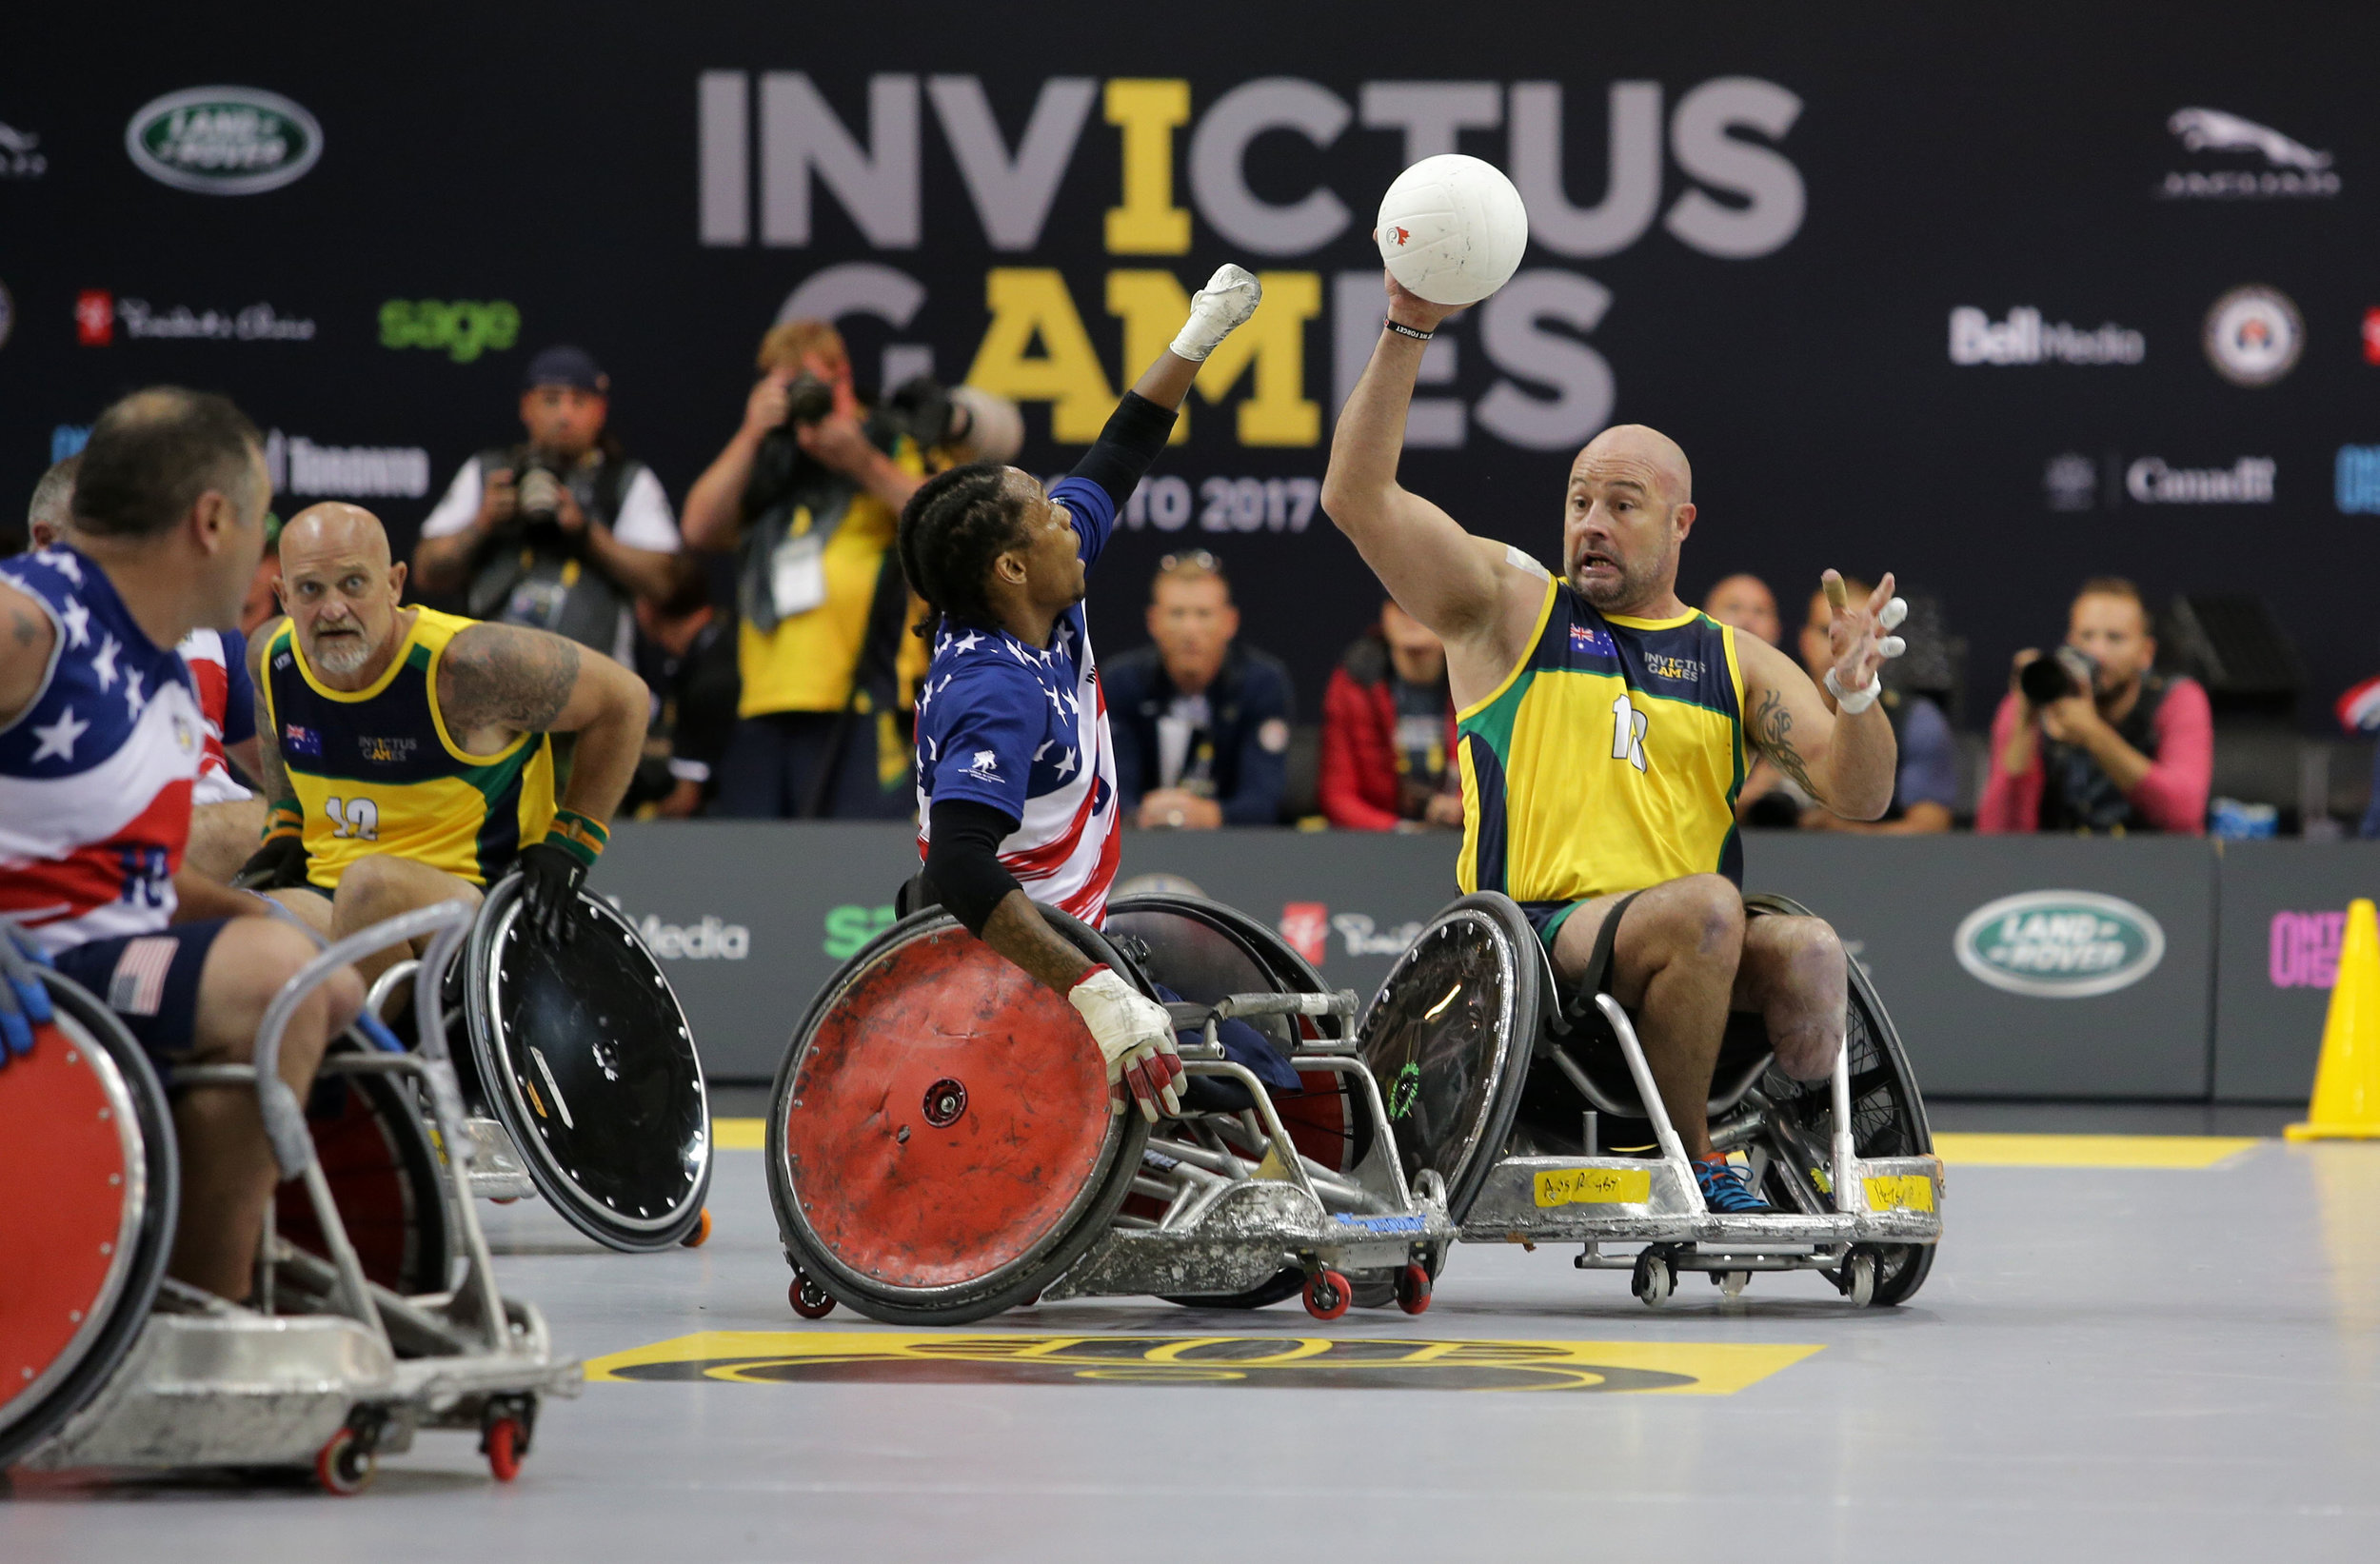 Invictus_Games_Wheelchair_Rugby.jpg